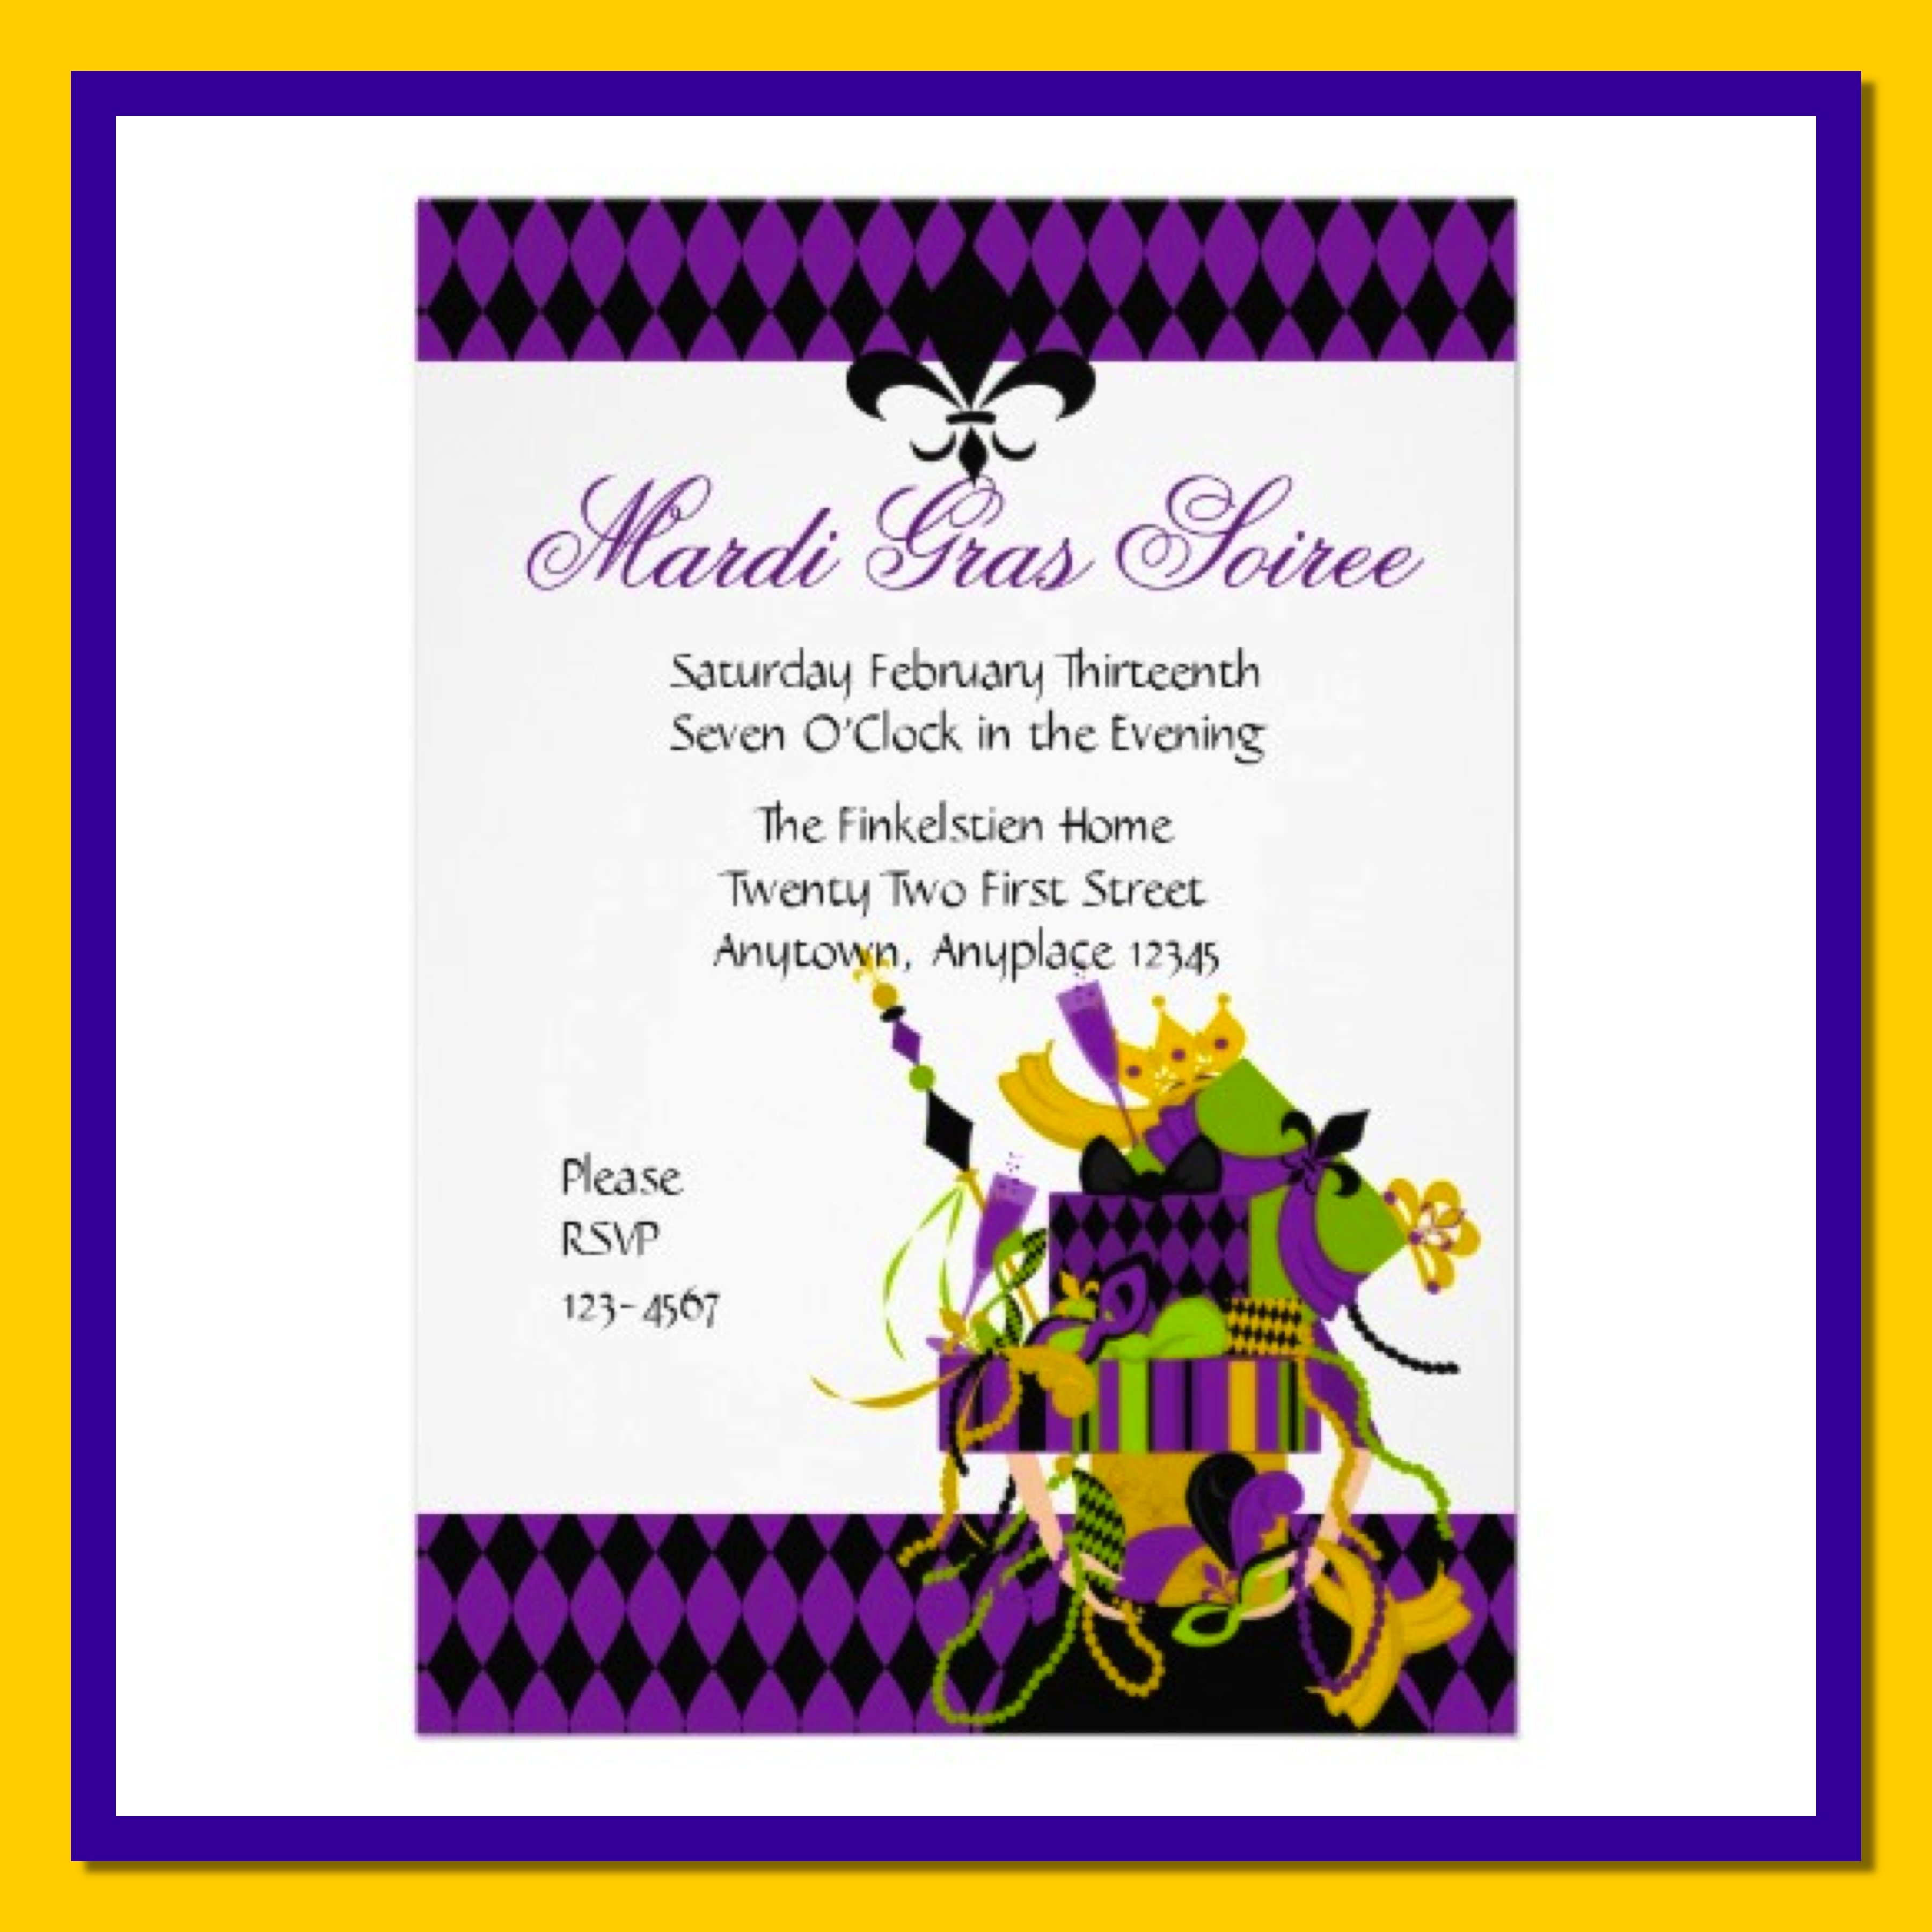 mardi gras wedding invitation wording - 28 images - blue and black ...